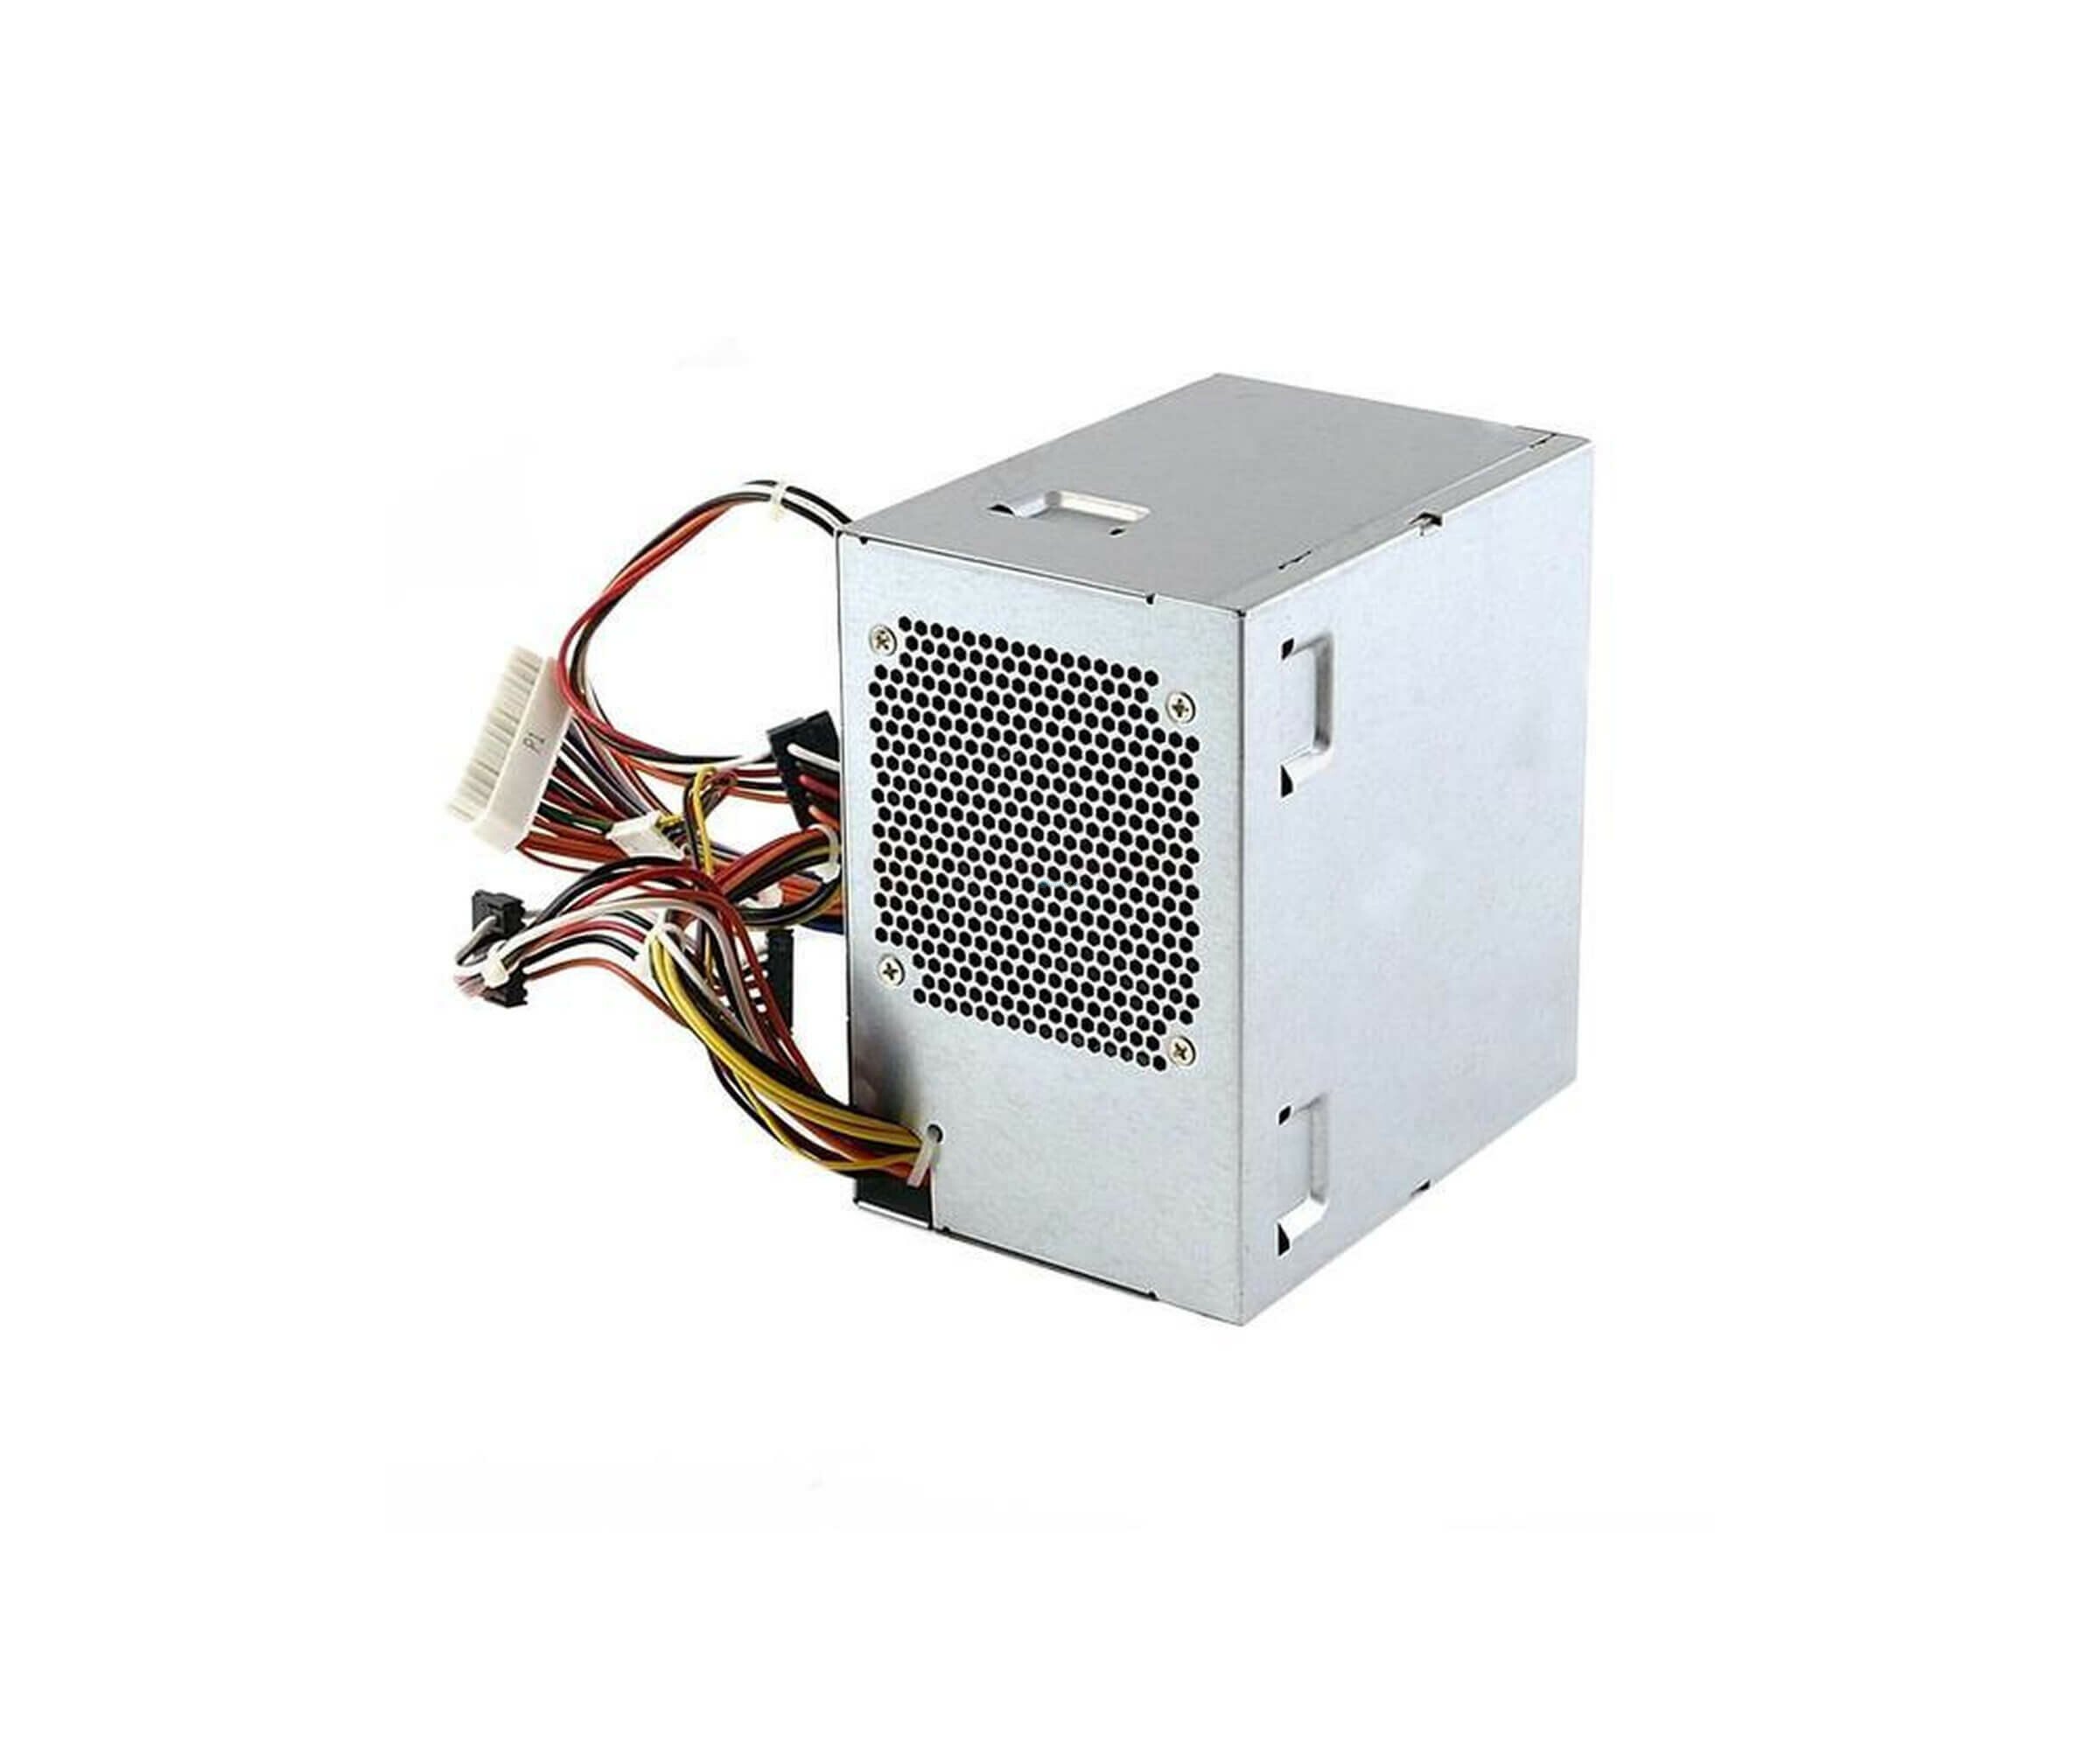 Dell - Power Supply Module - Netzteil - H305P-00 - 305 Watt - HP-P3067F3P - für Optiplex GX520, GX620